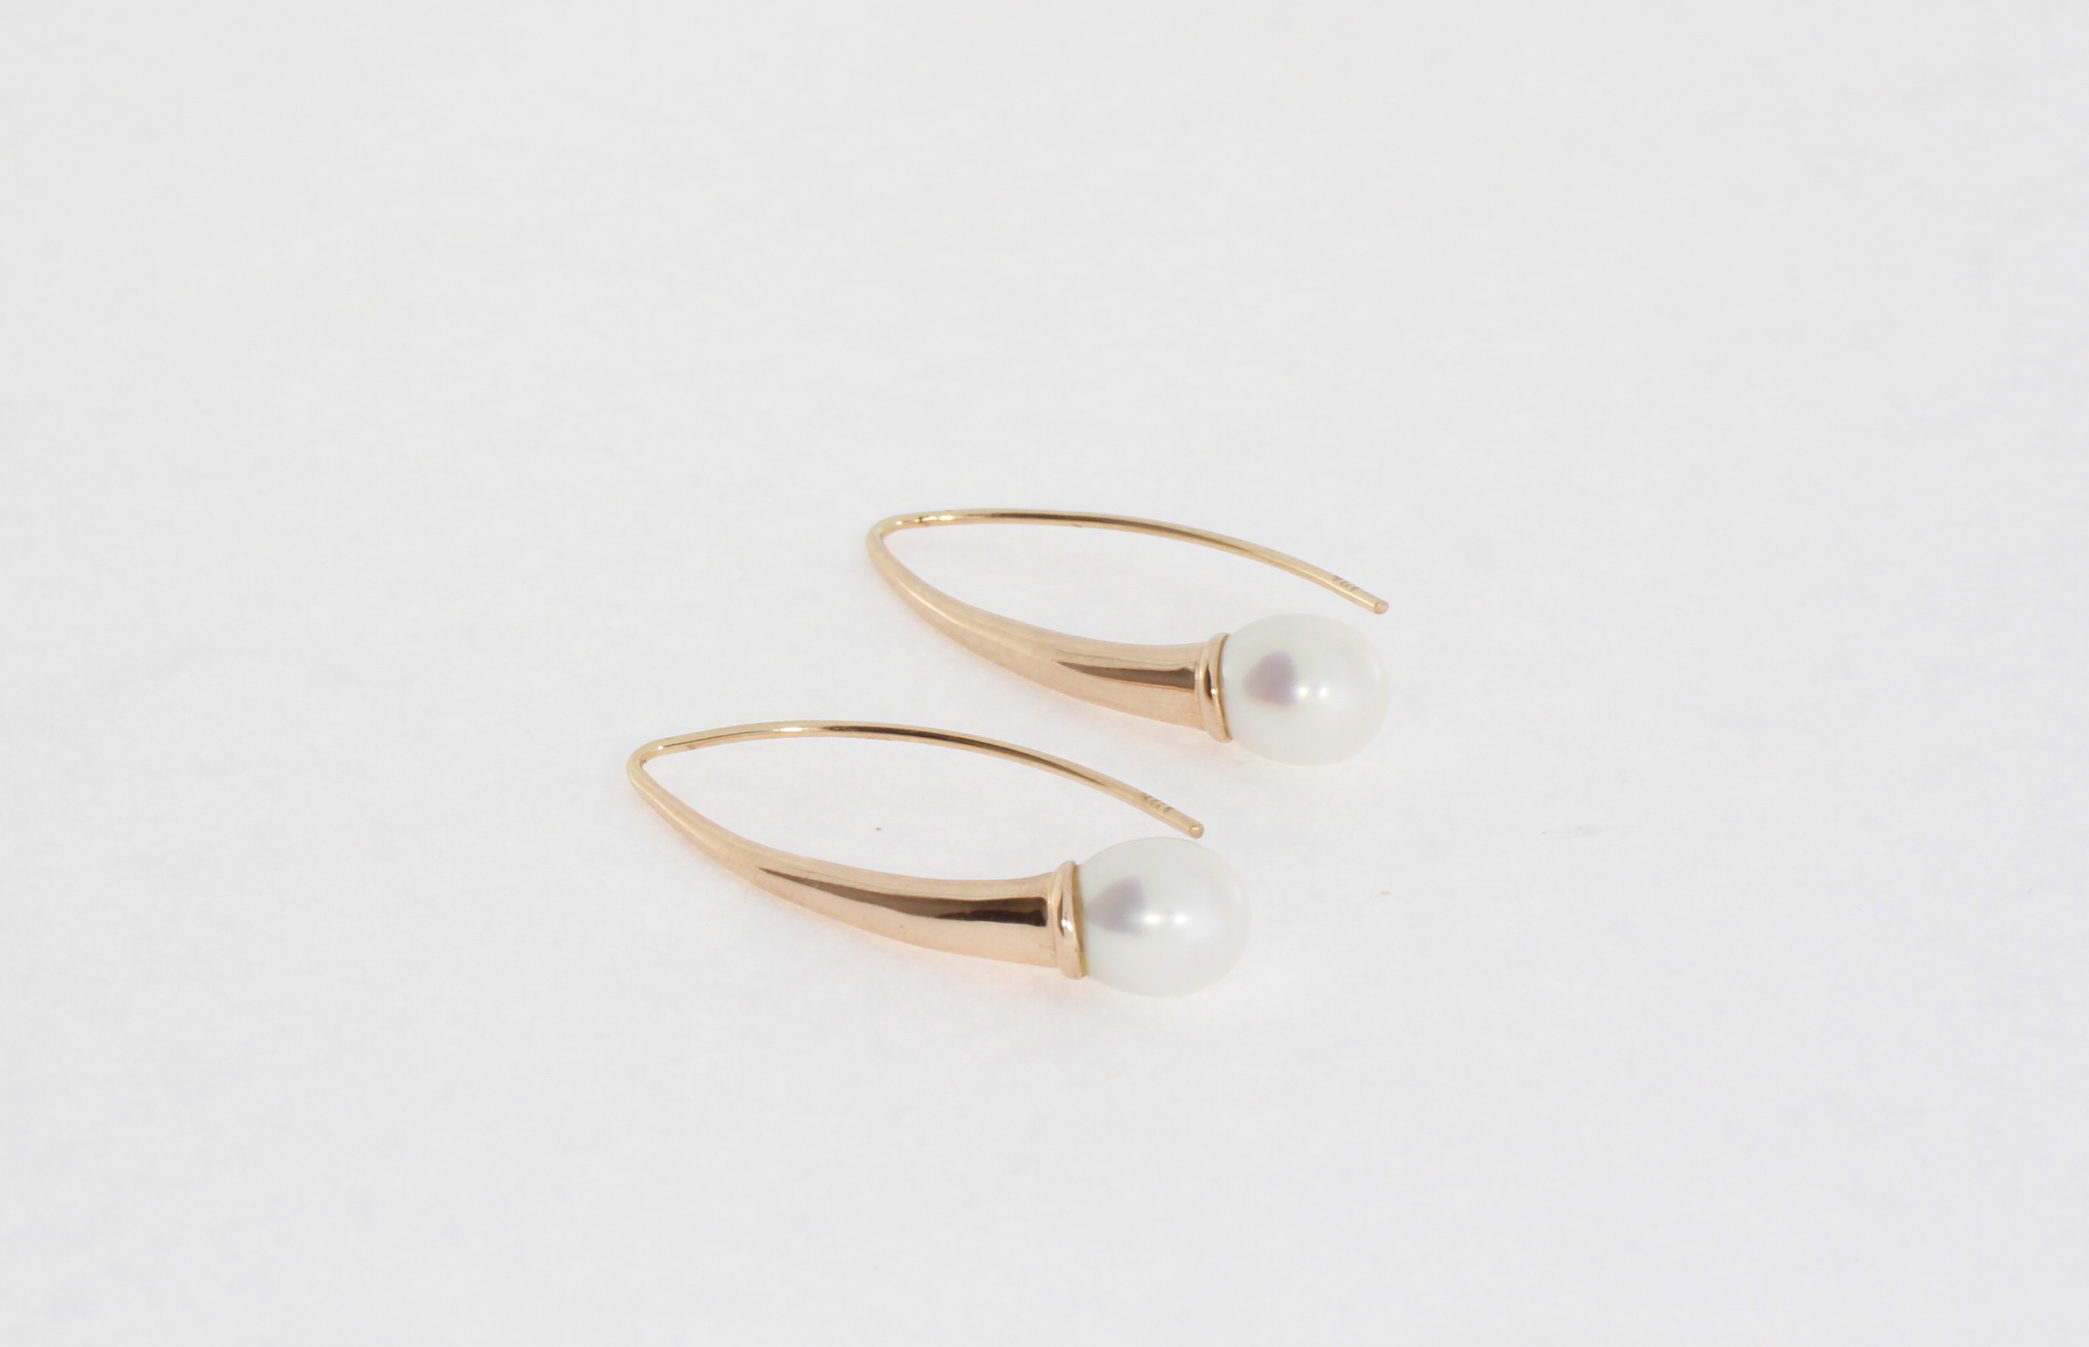 Payet long fresh water pearl earrings